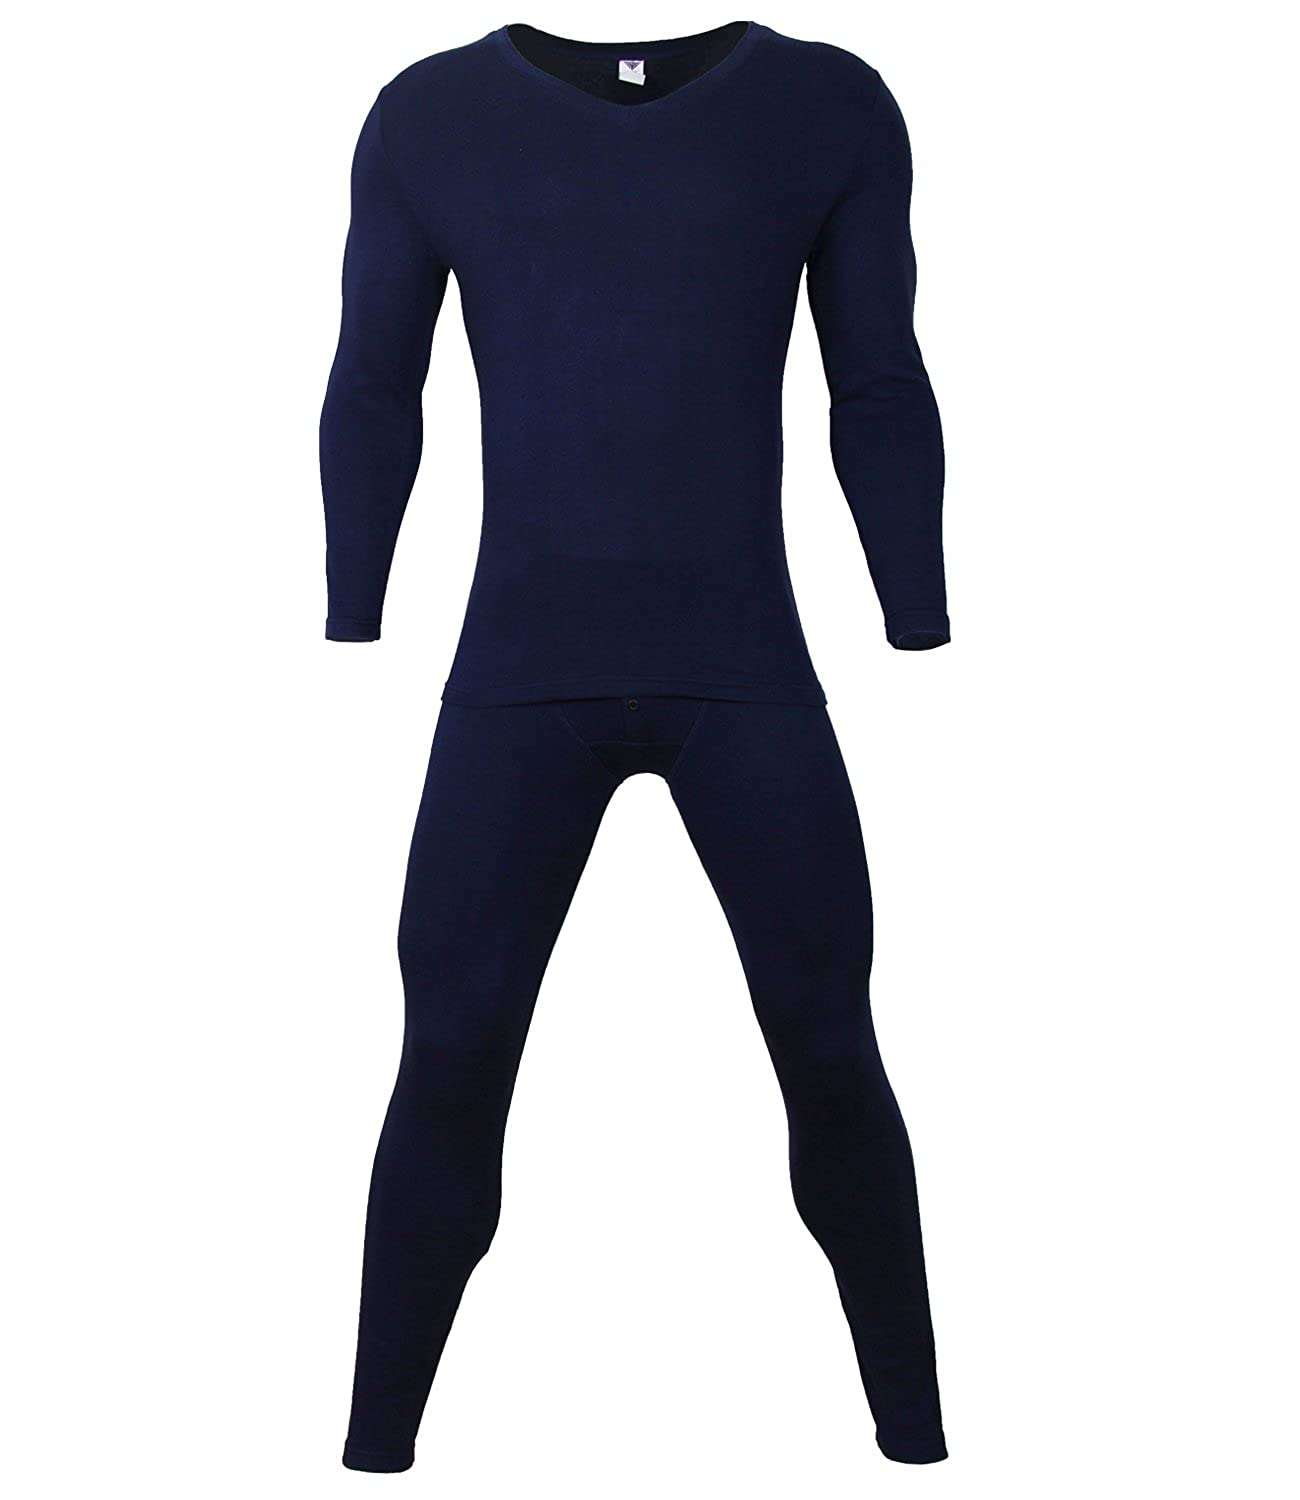 Godsen Mens Cotton Thermal Underwear Sets 8521601